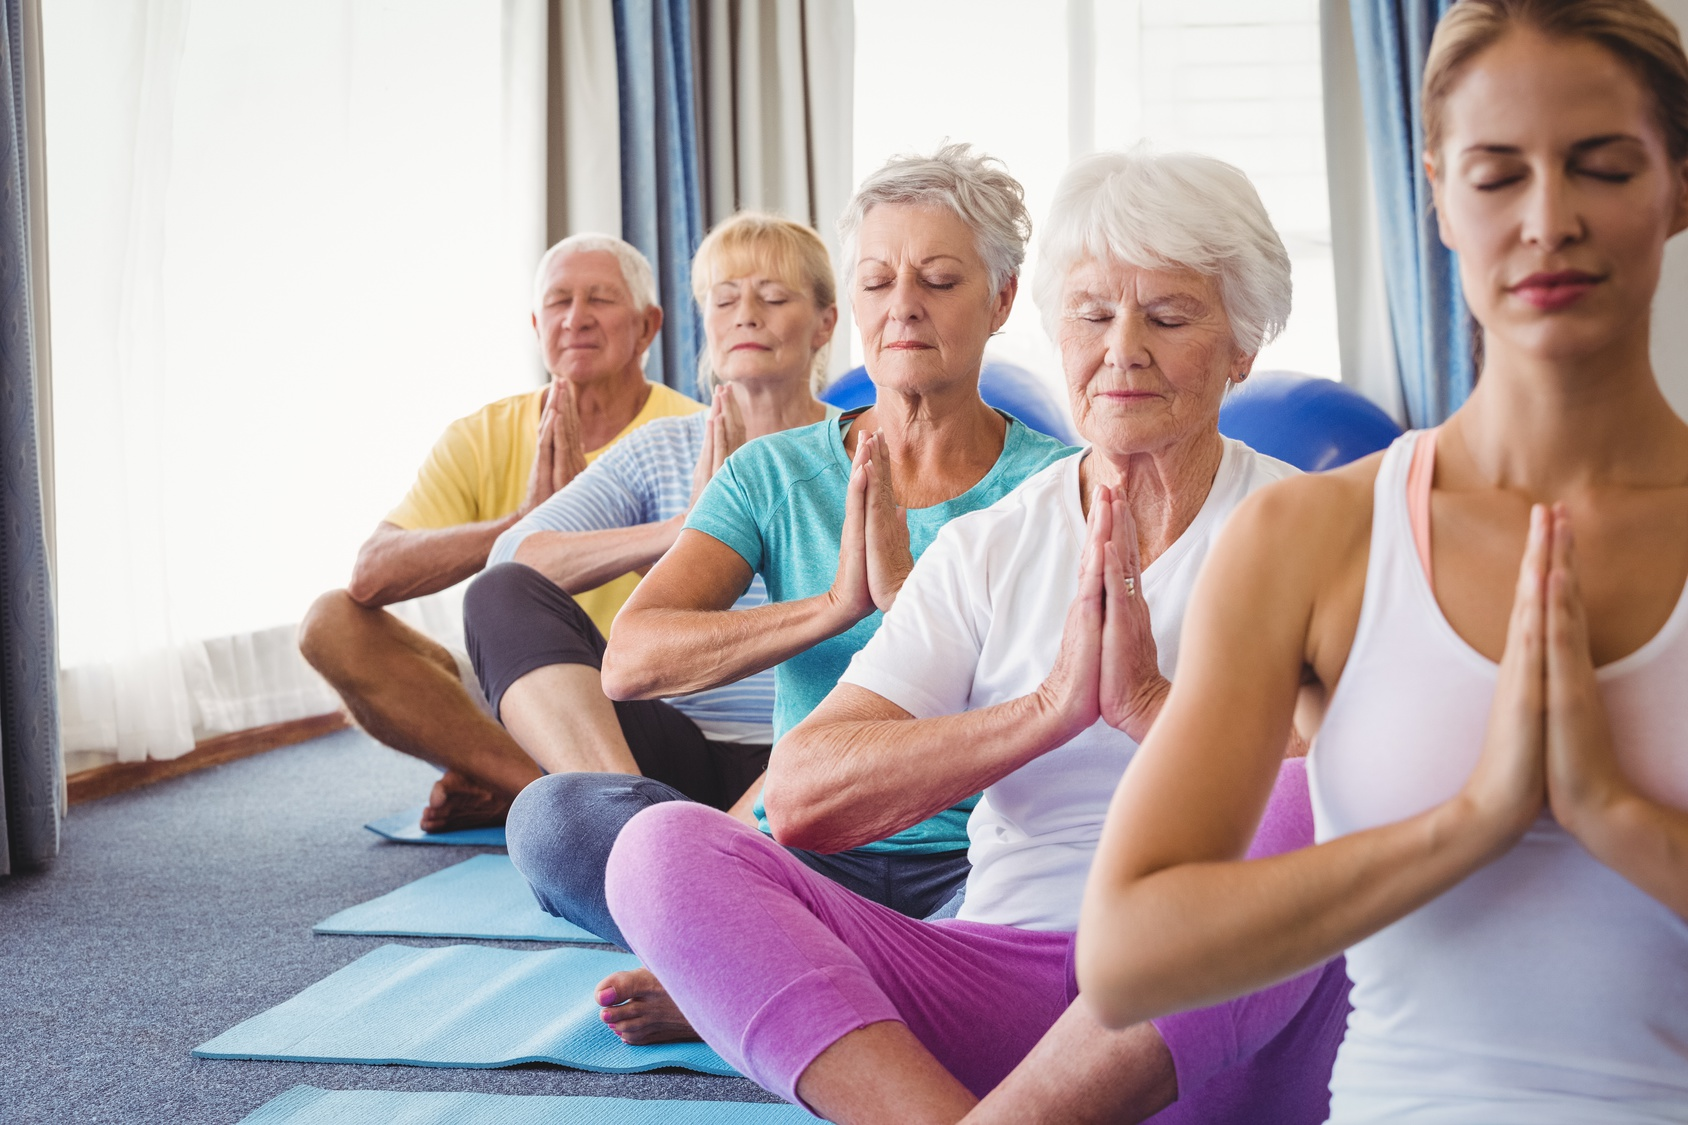 Seniors And The Benefits Of Exercise